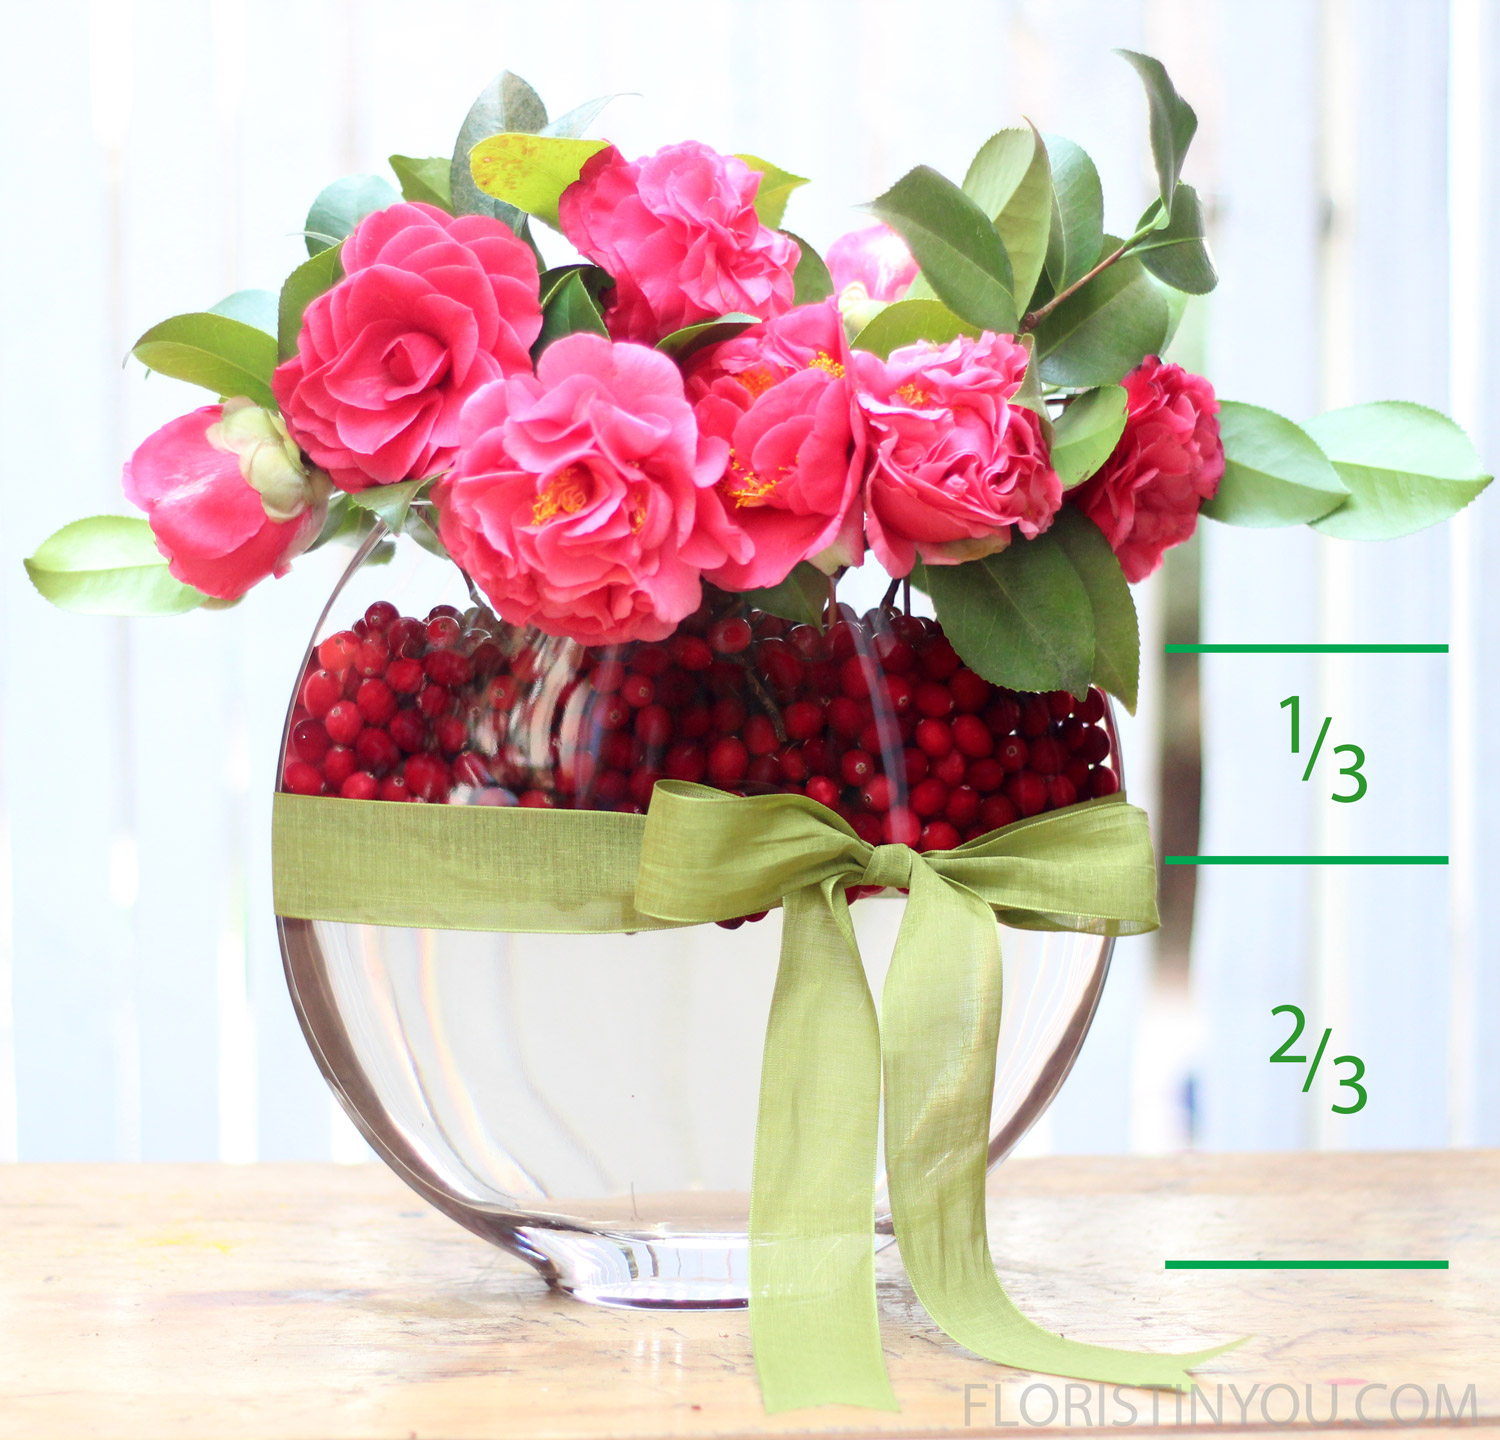 The cranberries take up about 1/3 of the vase.